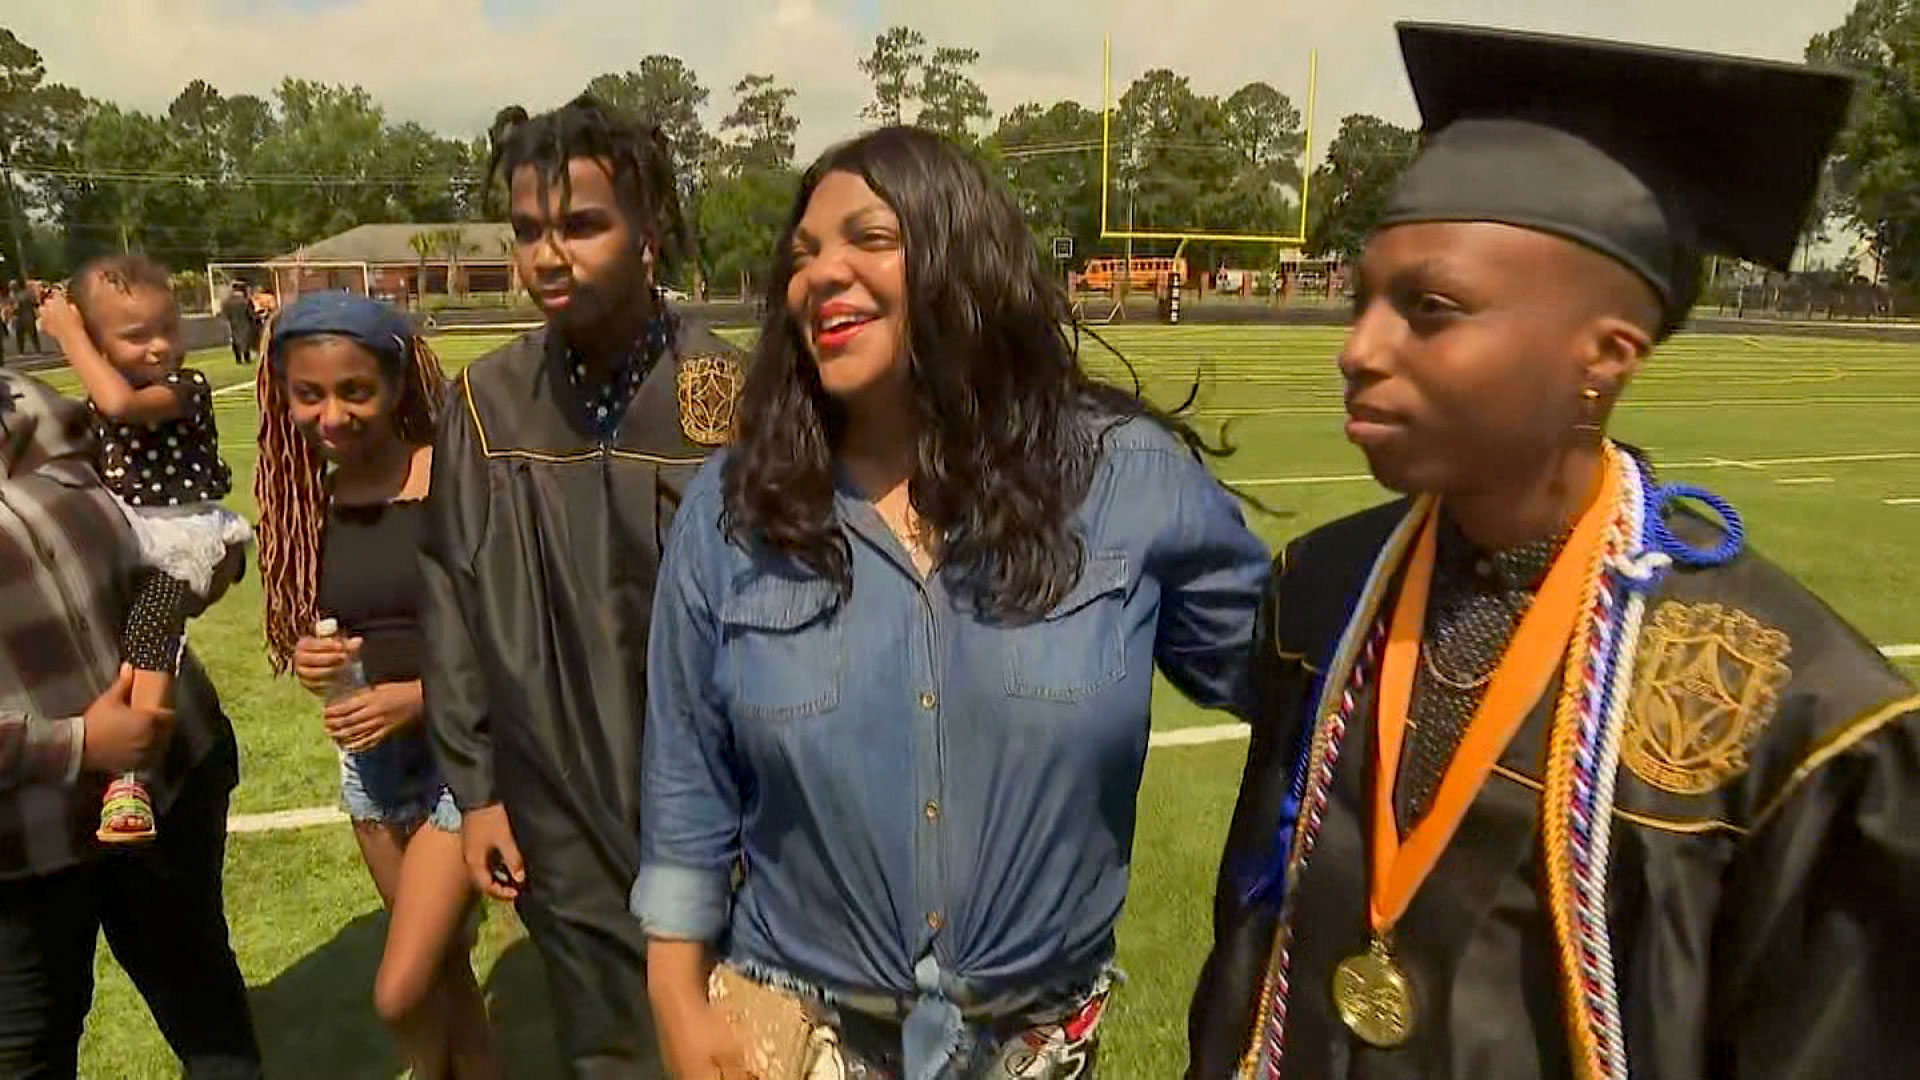 High school seniors breathe a sigh of relief that they made it to graduation. But school administrators fear the fall semester